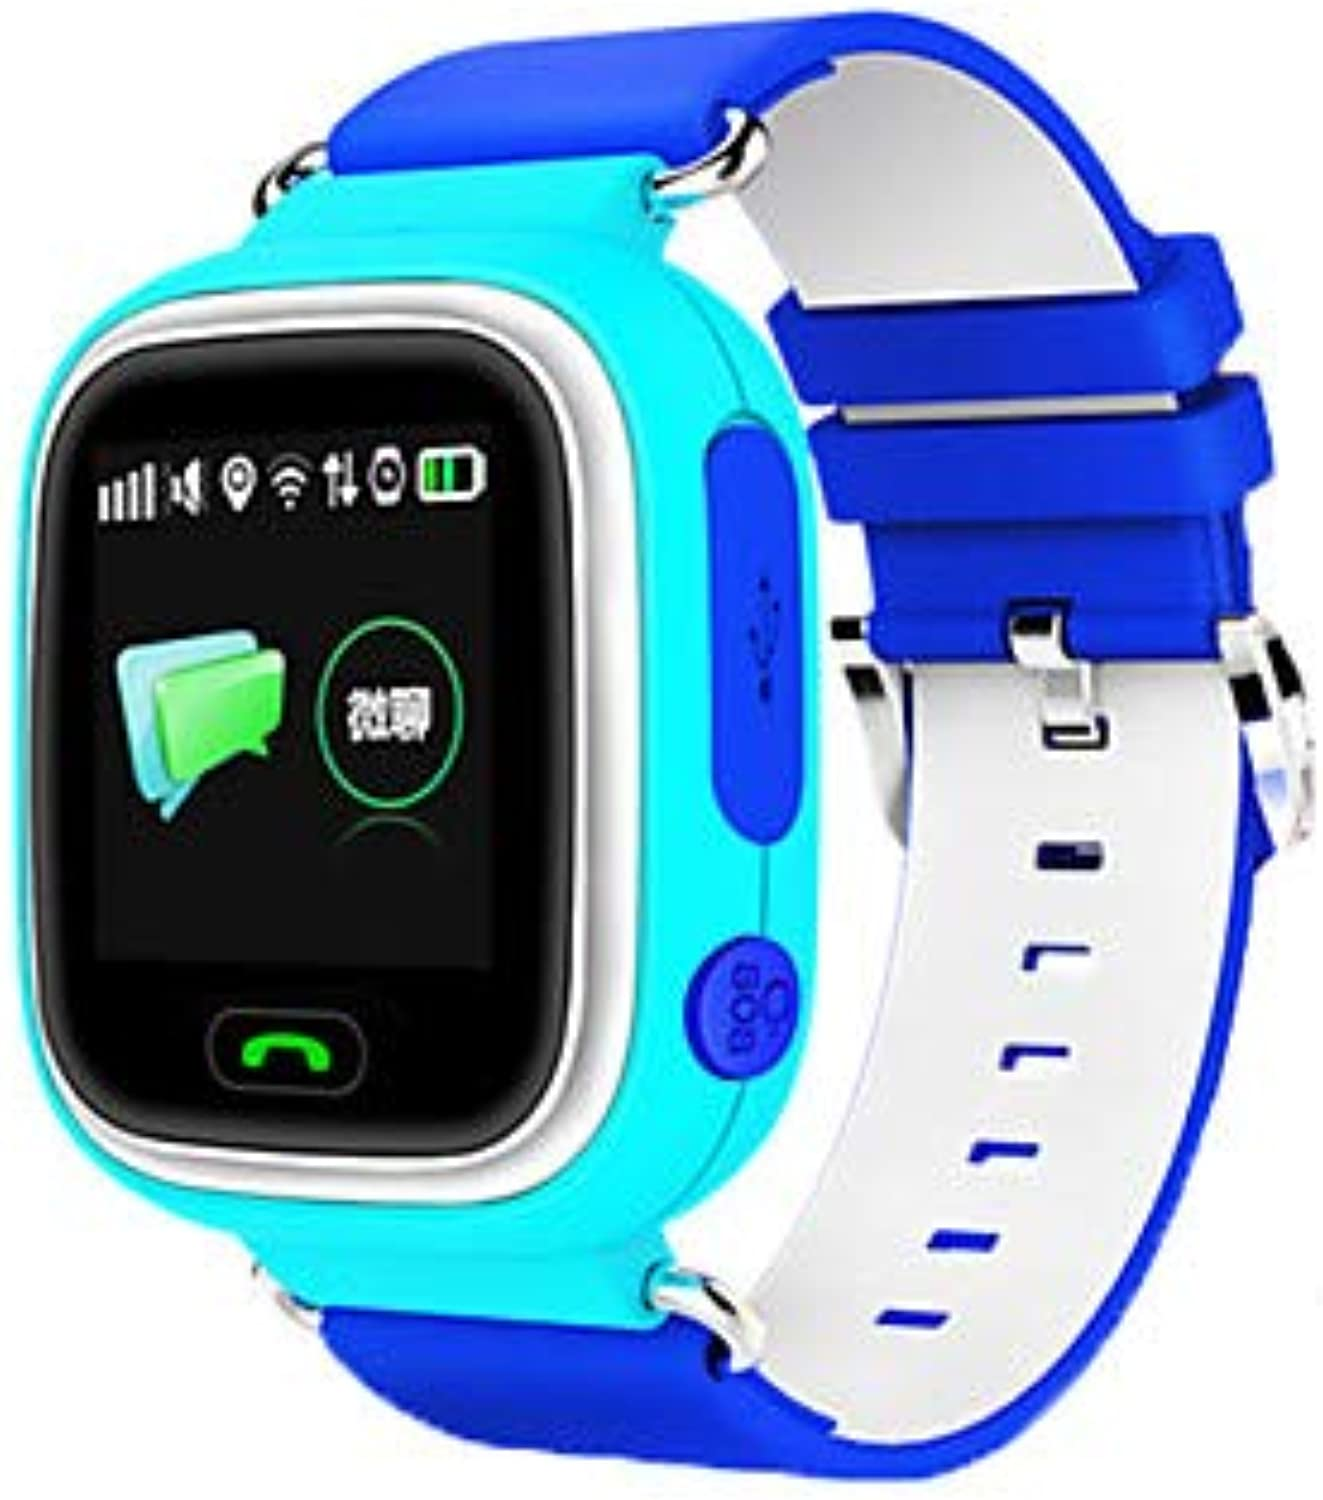 Fashion Watches Sports Watch Unisex GPS Digital Digital Wrist Watch